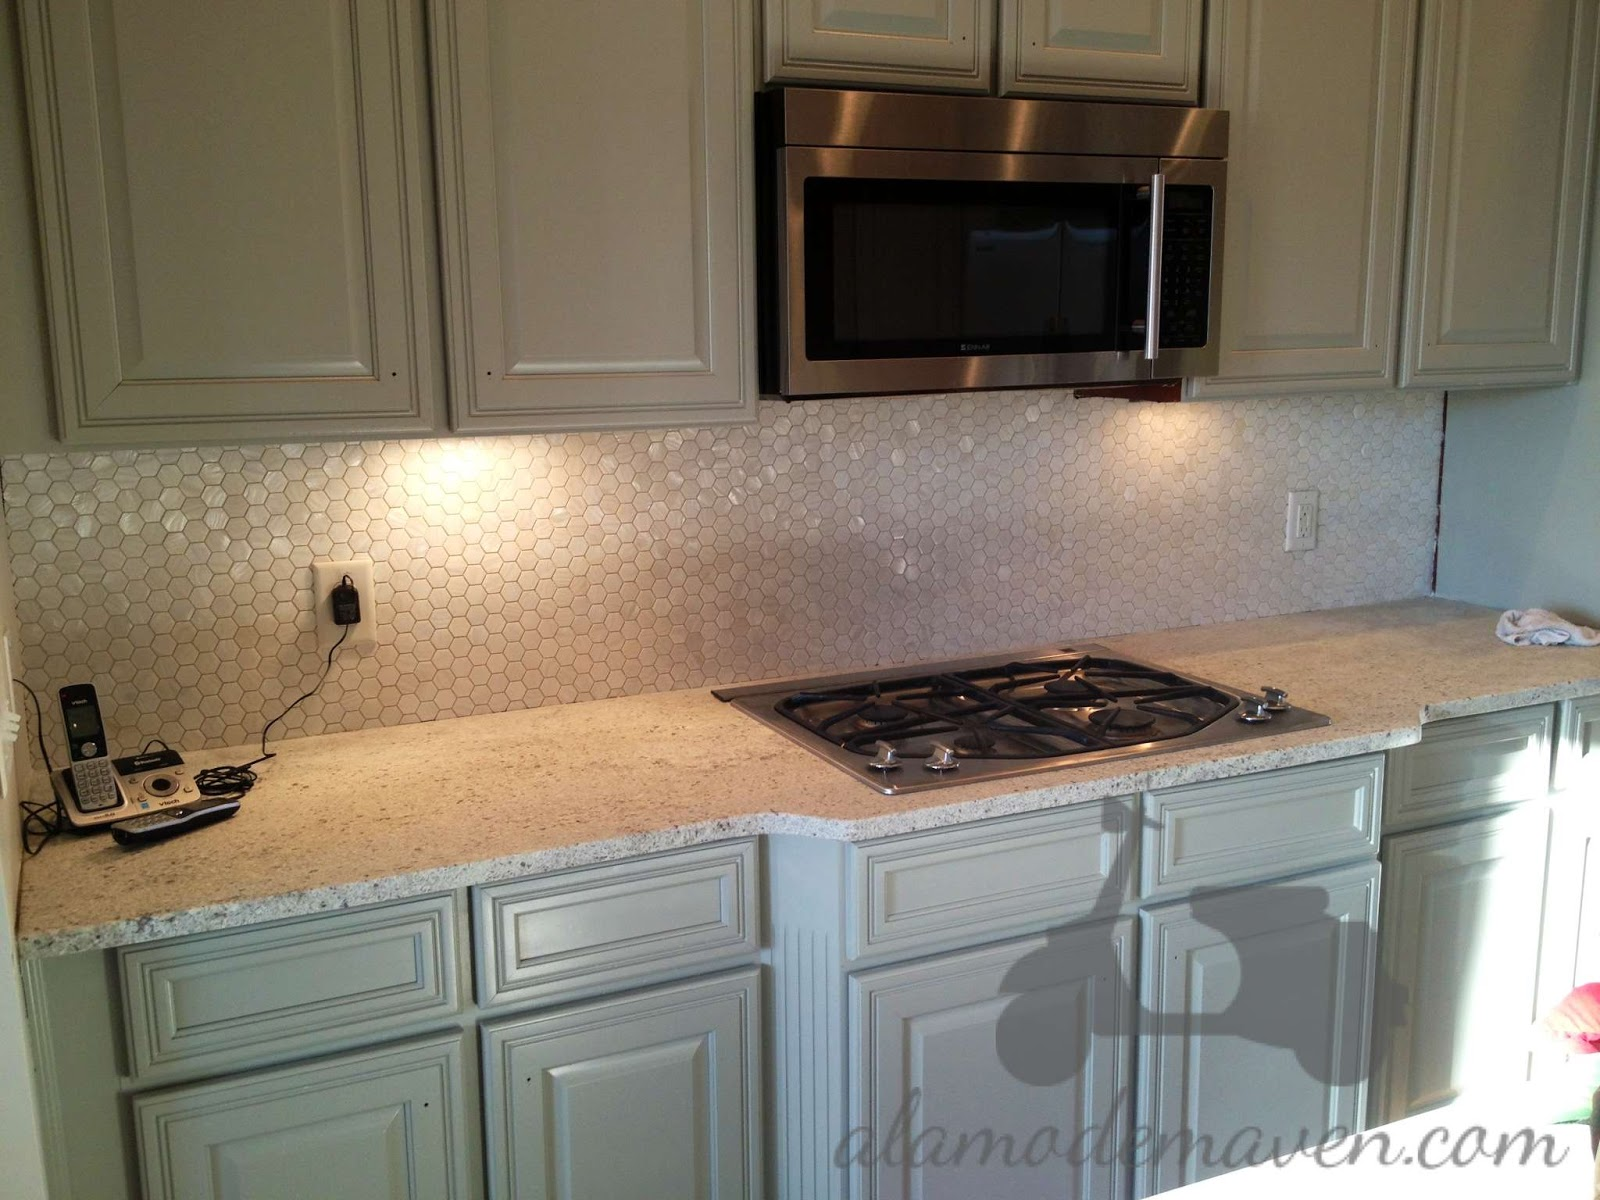 Alamode the new kitchen tile backsplash Kitchen tile backsplash